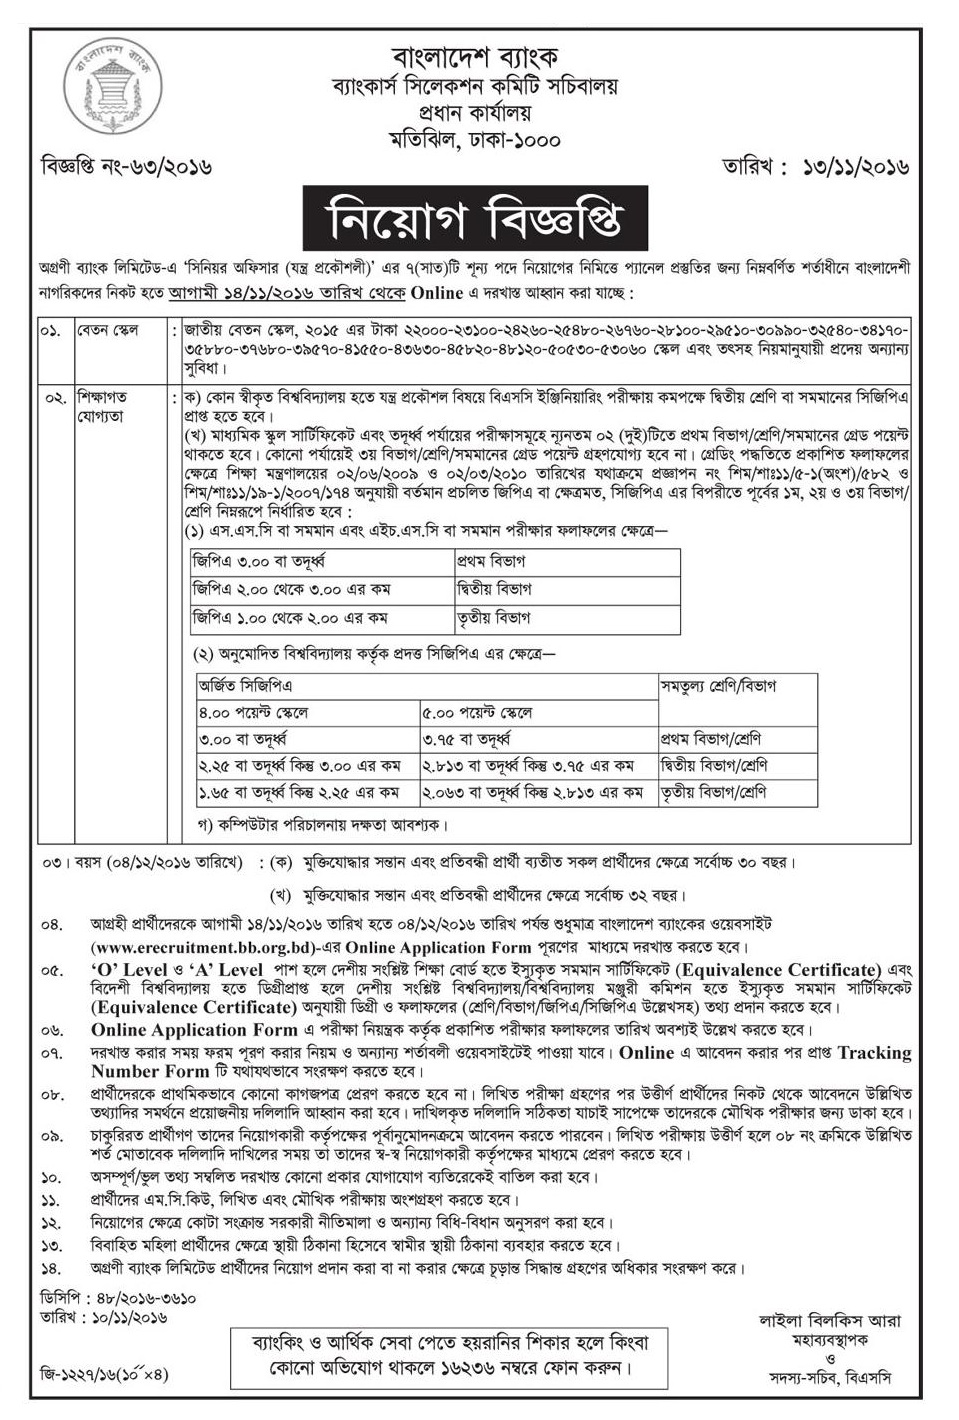 Bangladesh Bank job circular in November 2016